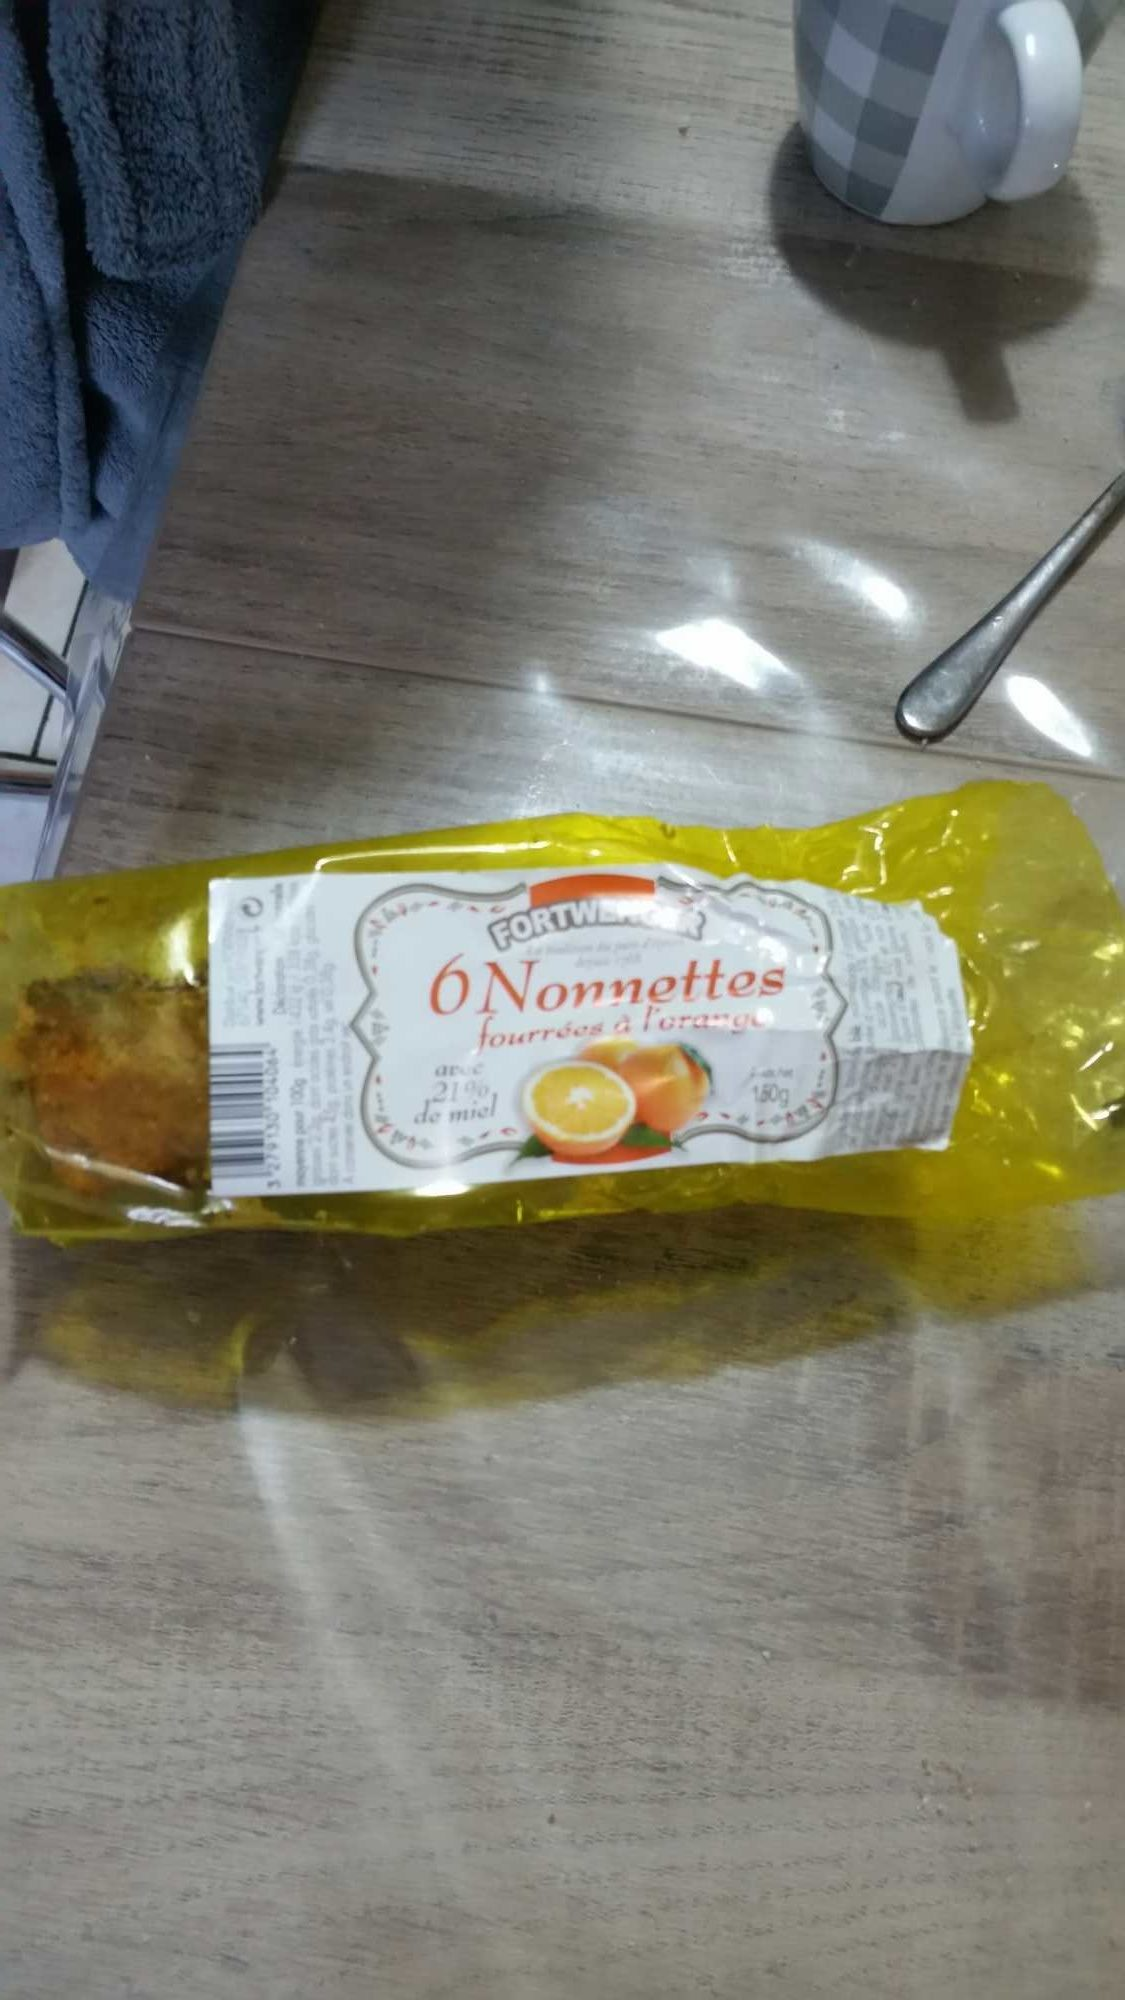 6 nonnettes fourées à l'orange - Product